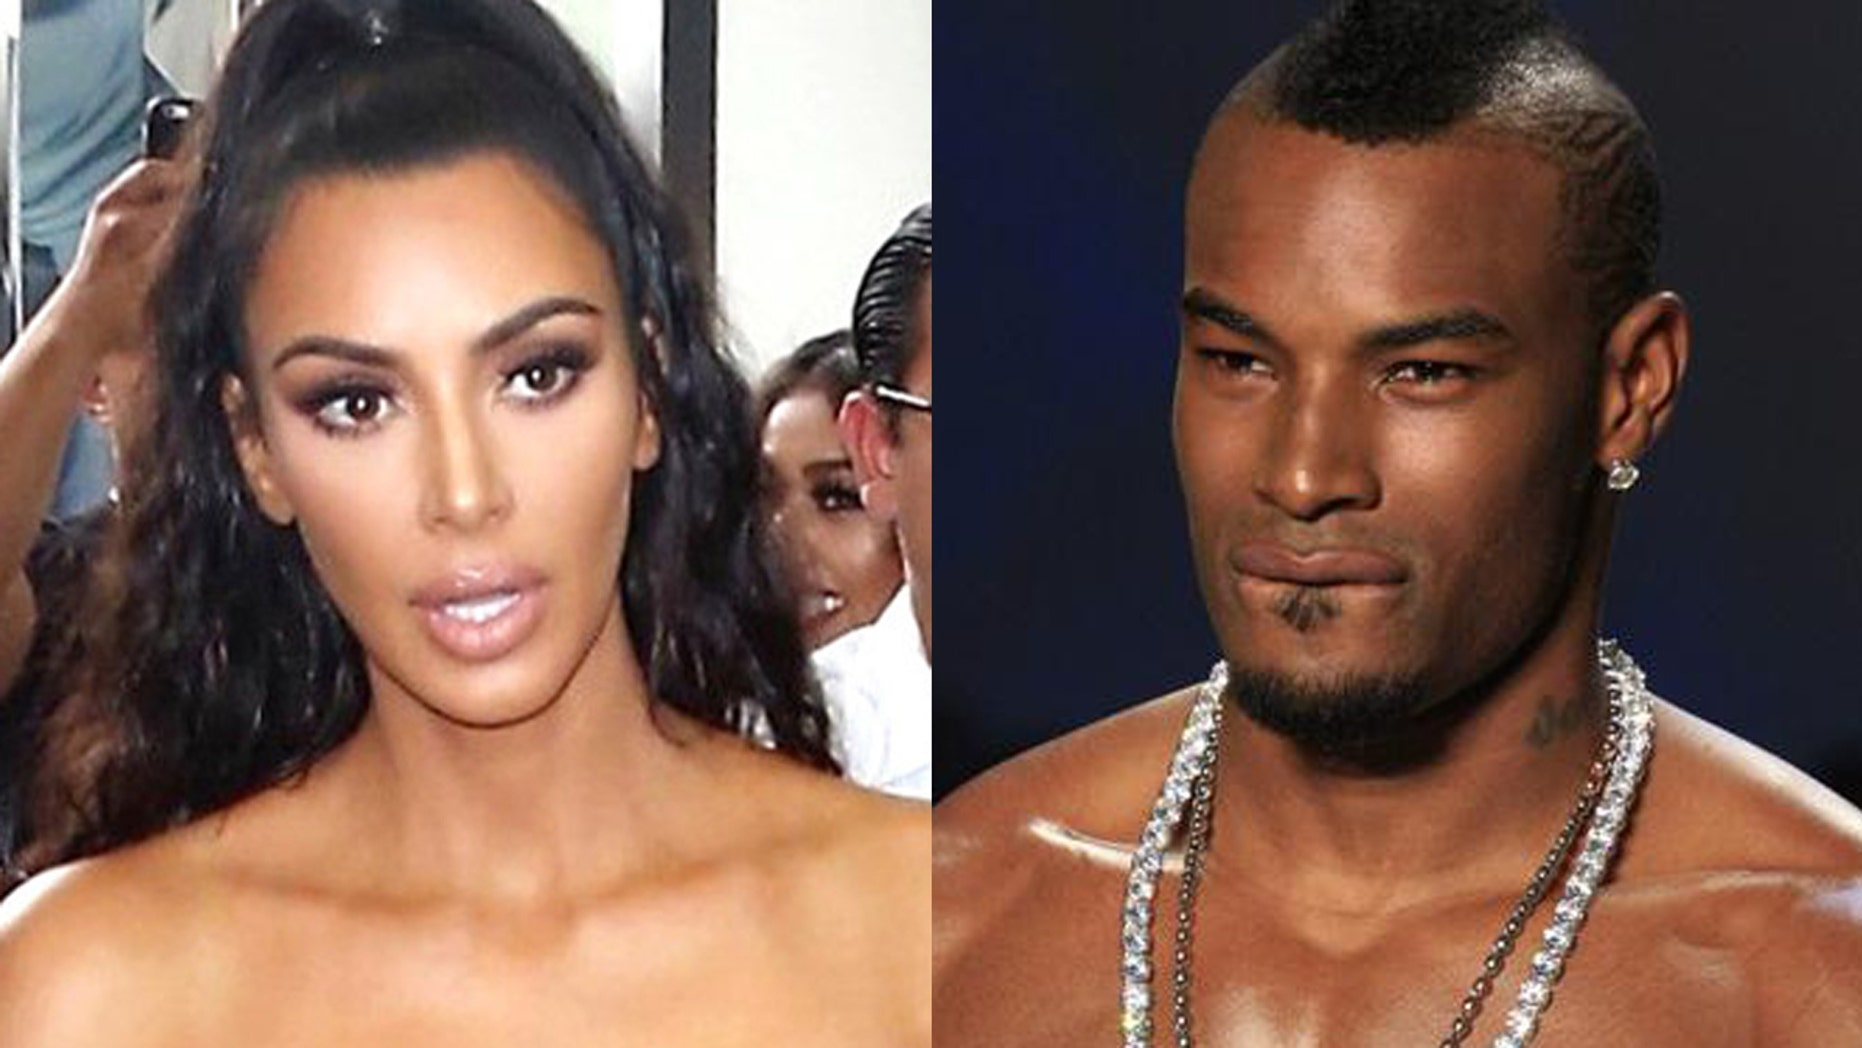 Kim Kardashian and model Tyson Beckford have began a war of words on social media after the model said that he 'didn't care' for the reality star's body.